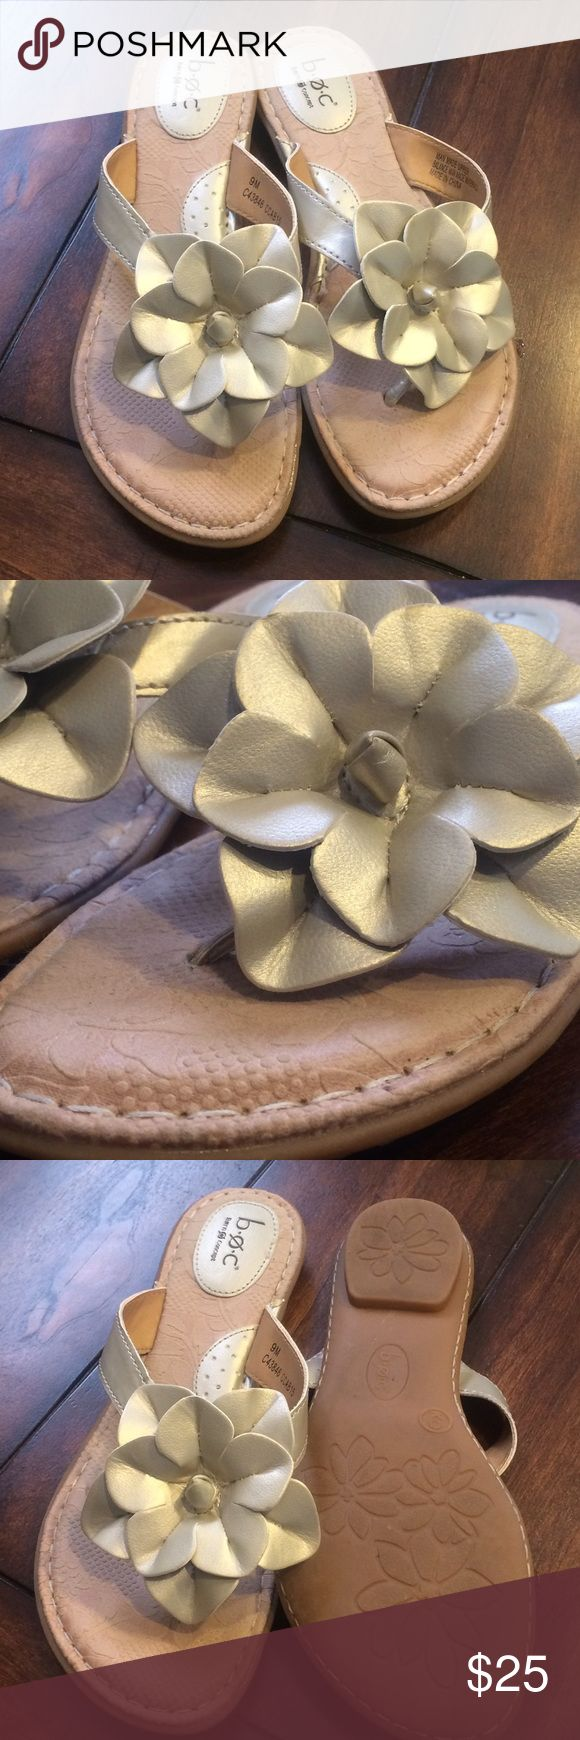 B.o.c. Cream flower flip flop These are super comfy and such a great color because they go with anything! A must need for summer exploring.  🌳🌼 Born Shoes Sandals